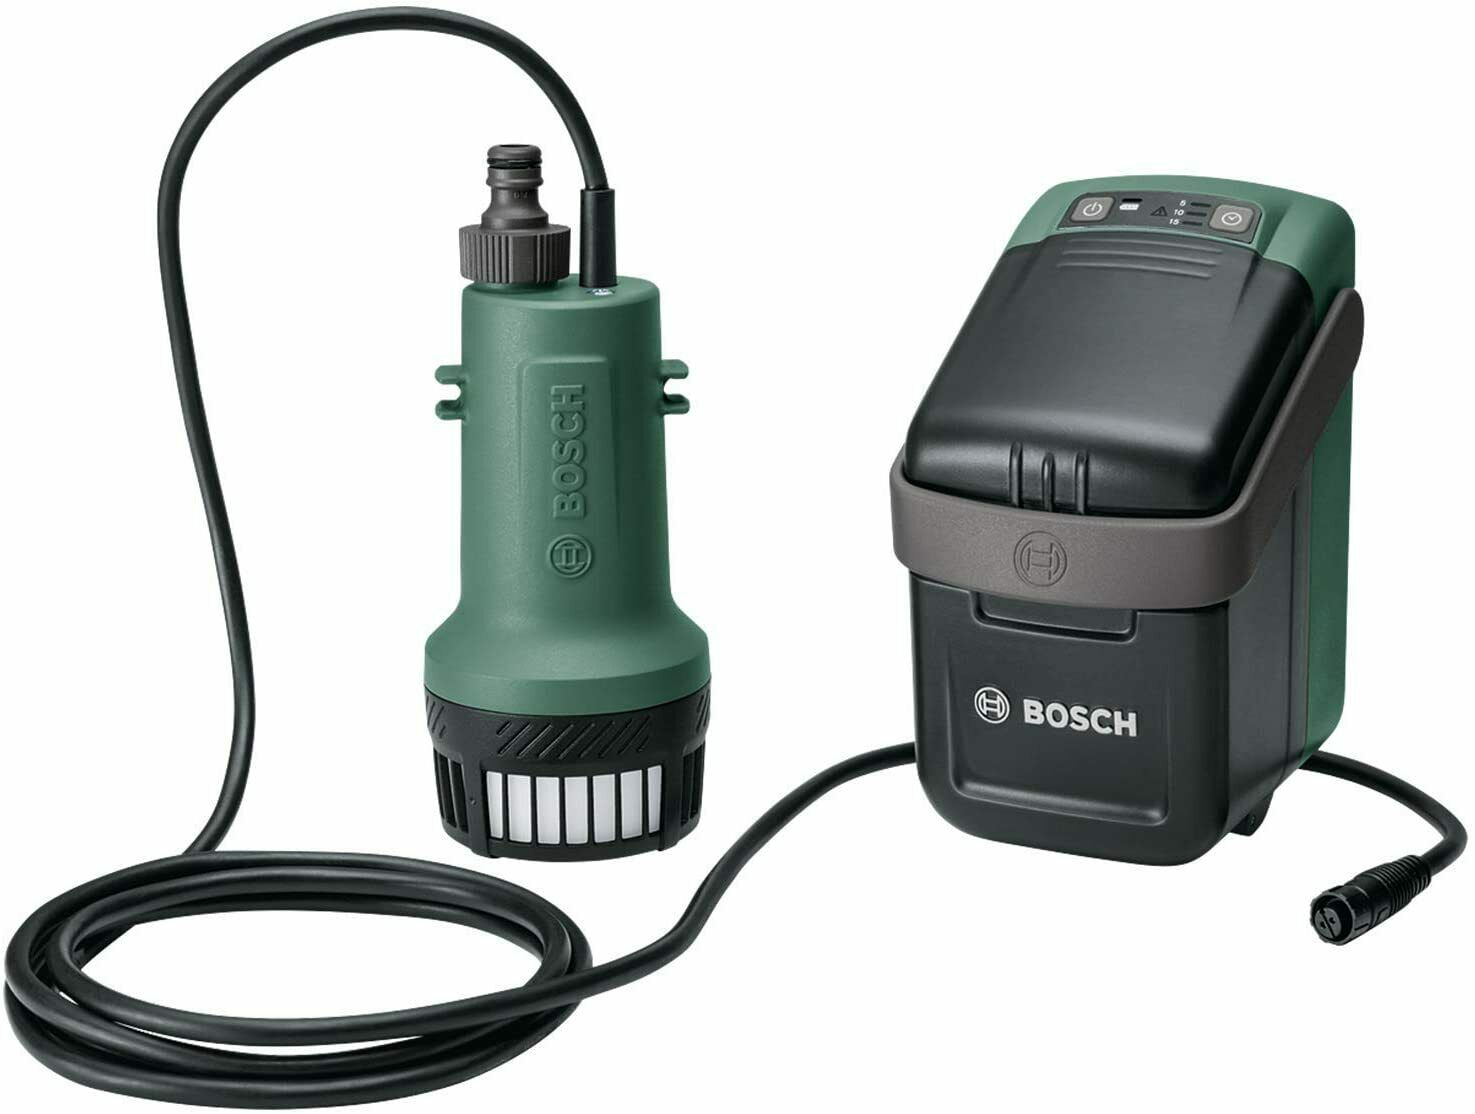 Bosch Cordless Submersible Pump (without battery, 18 Volt System)